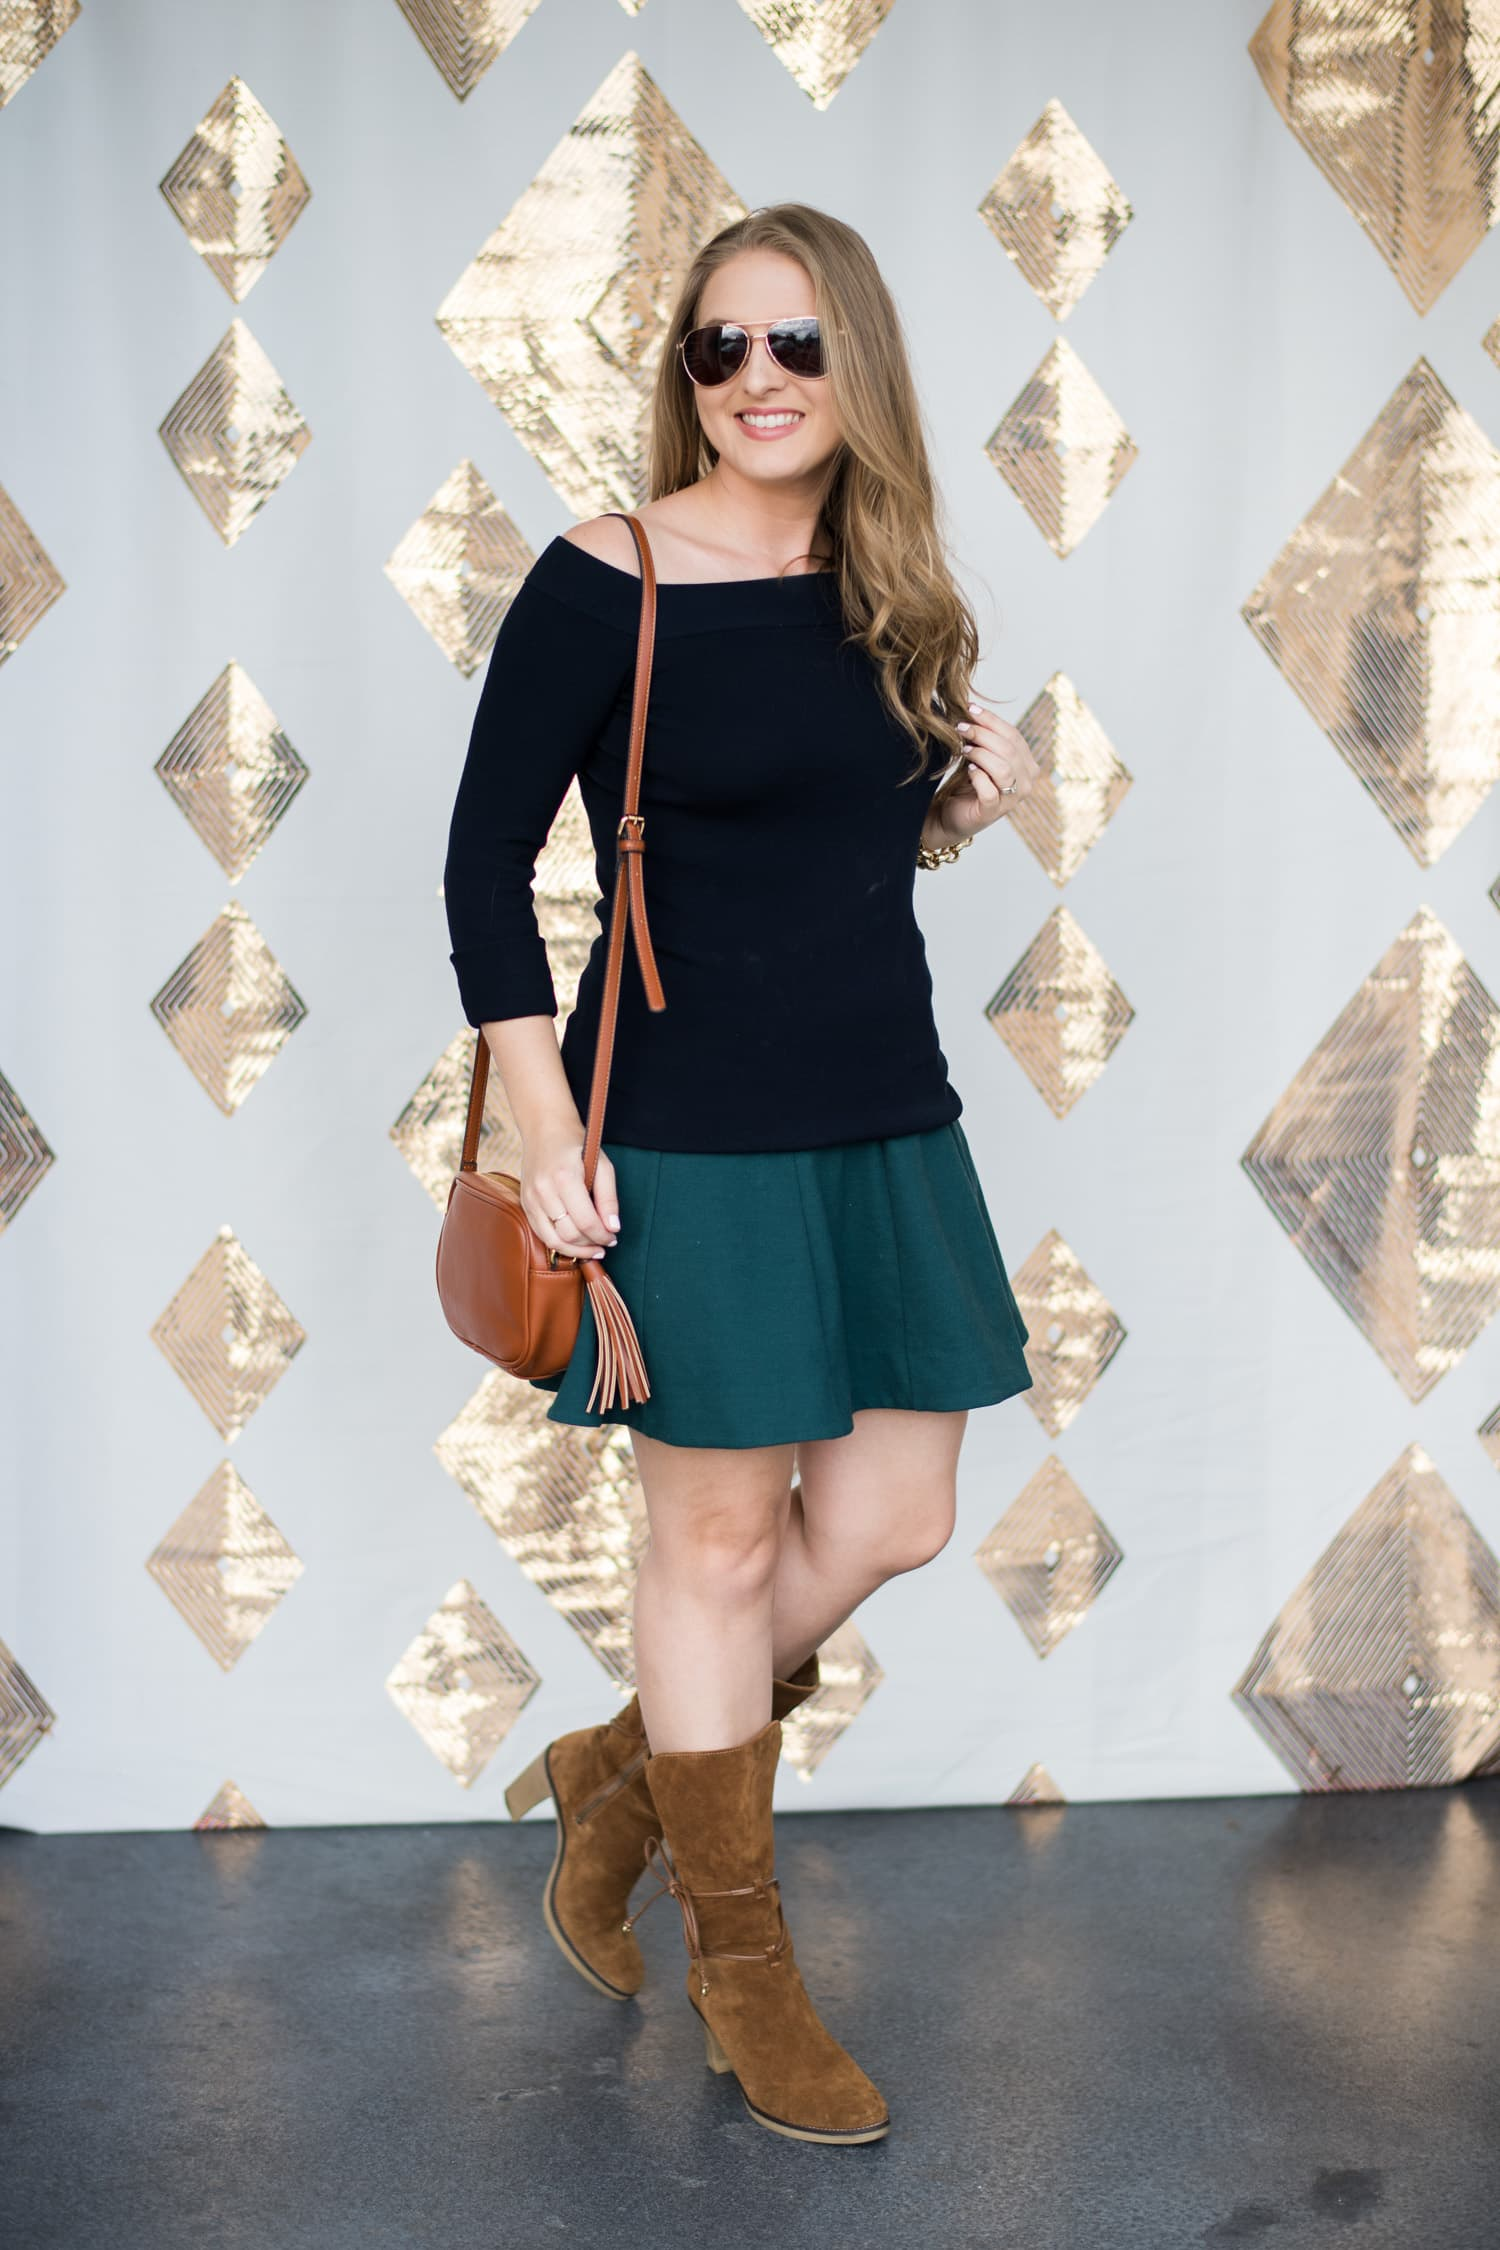 casual-fall-outfit-brown-suede-boots-foster-grant-opening-orlando-3226